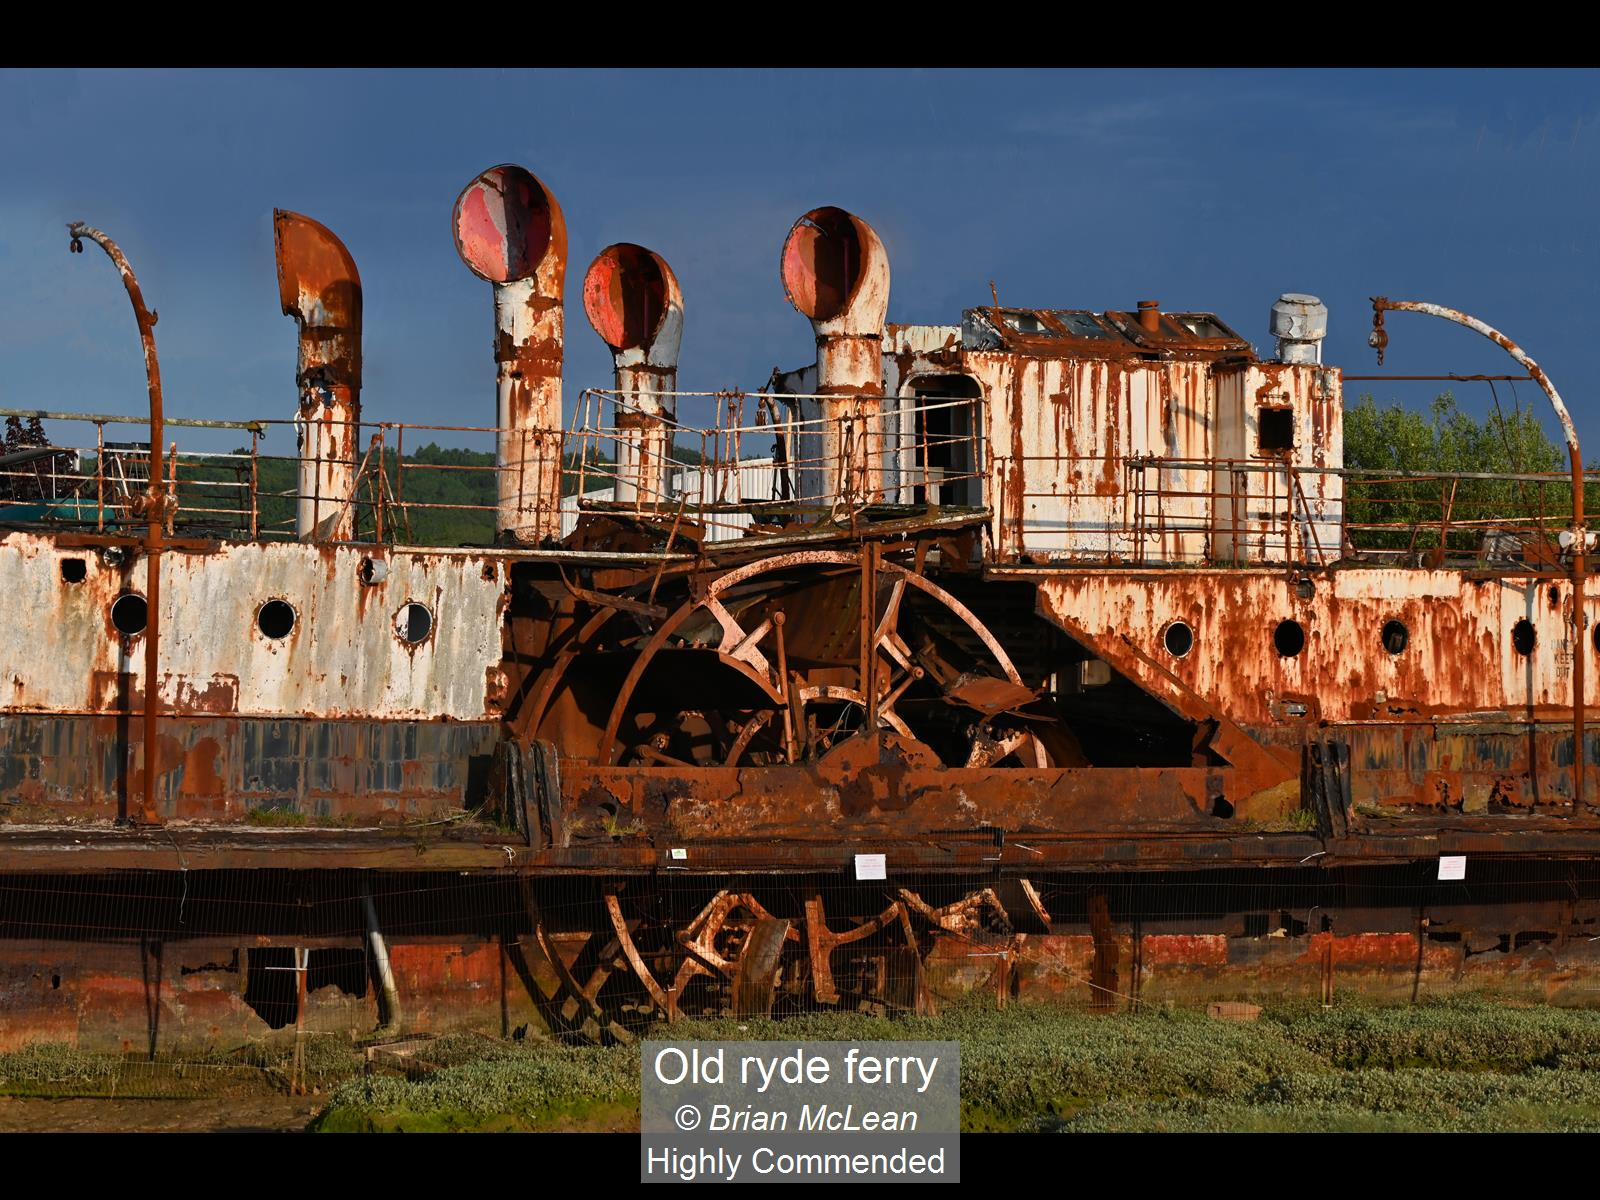 Old ryde ferry_Brian McLean_HComm